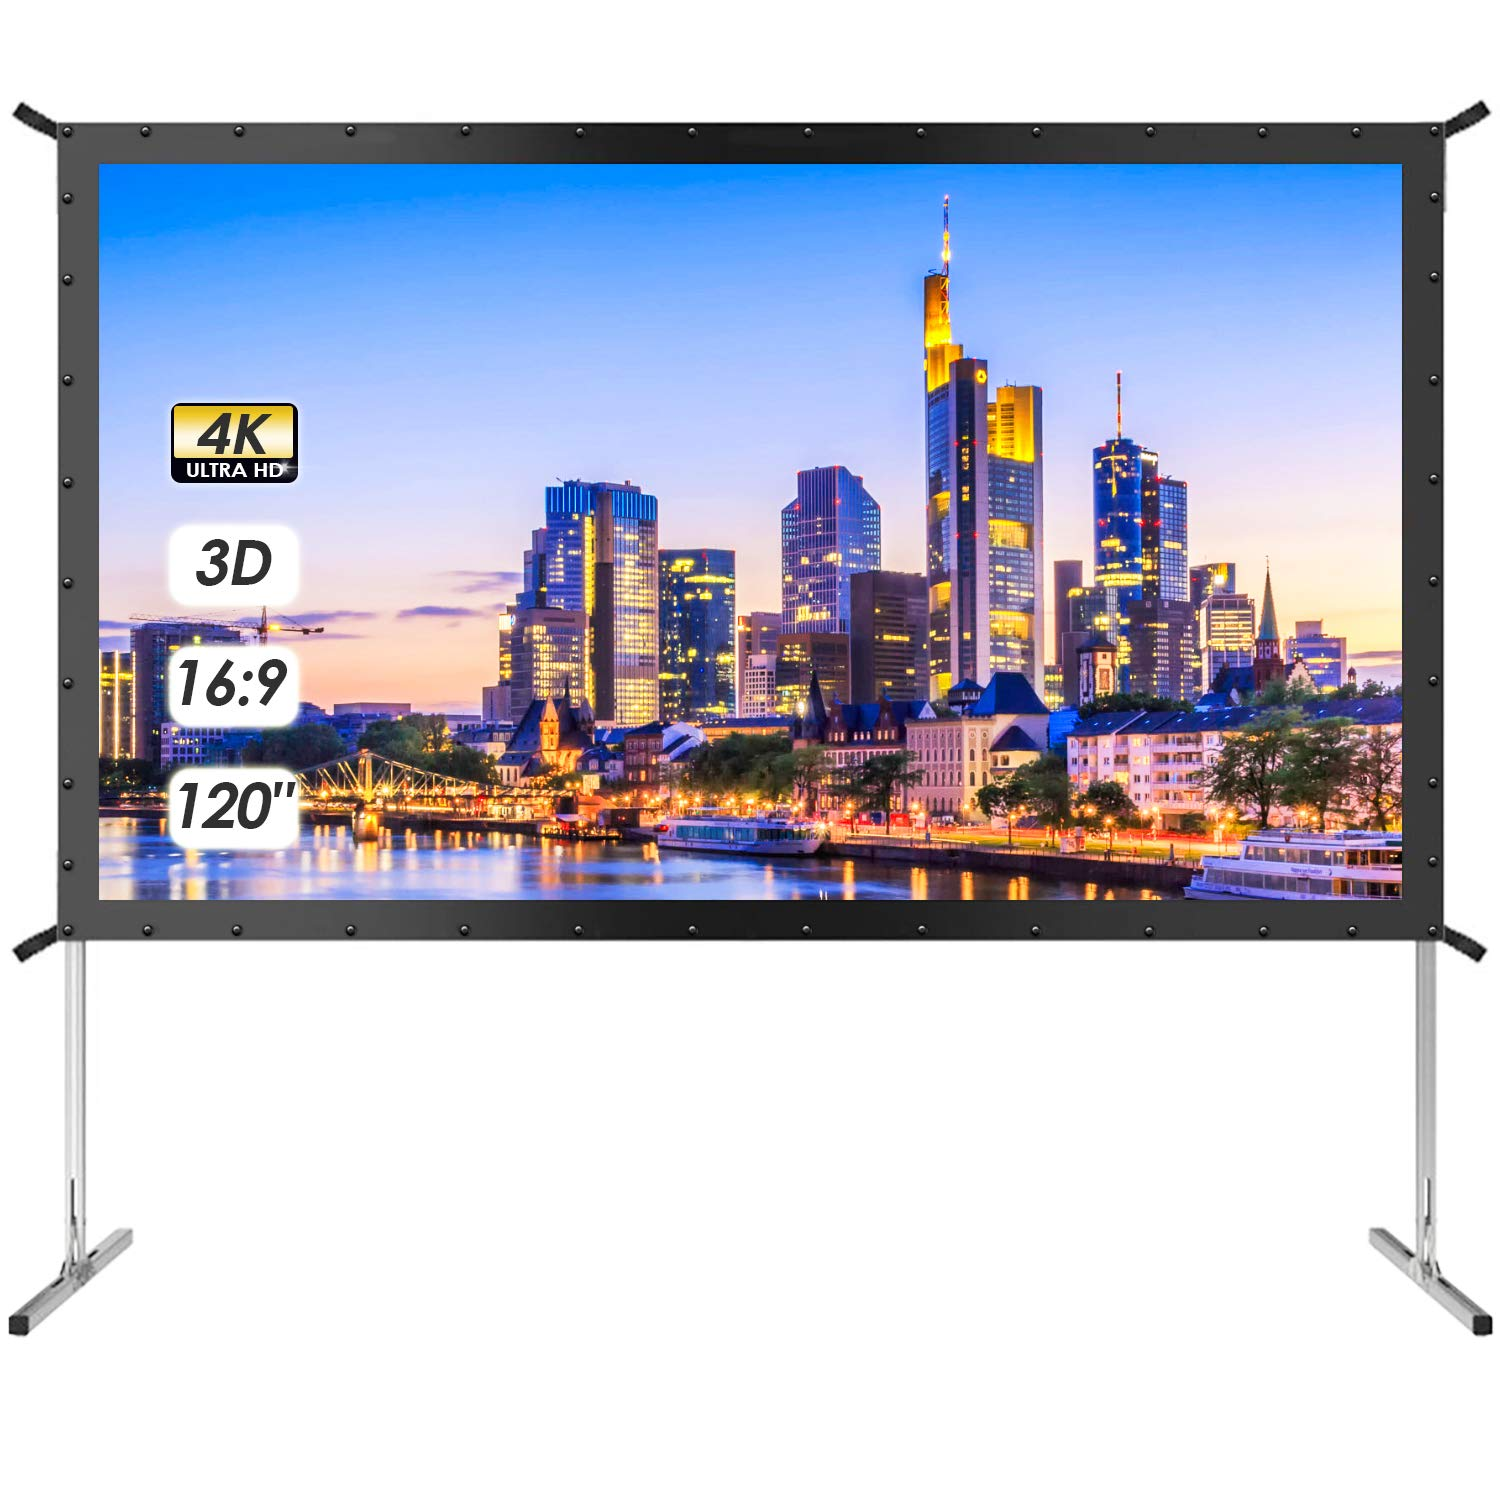 120 Inch Projector Screen with Stand - TUSY 4K HD 3D Indoor/Outdoor Foldable Projection Screens 16:9 Portable Movie Theater for Gaming Camping Cinema by TUSY